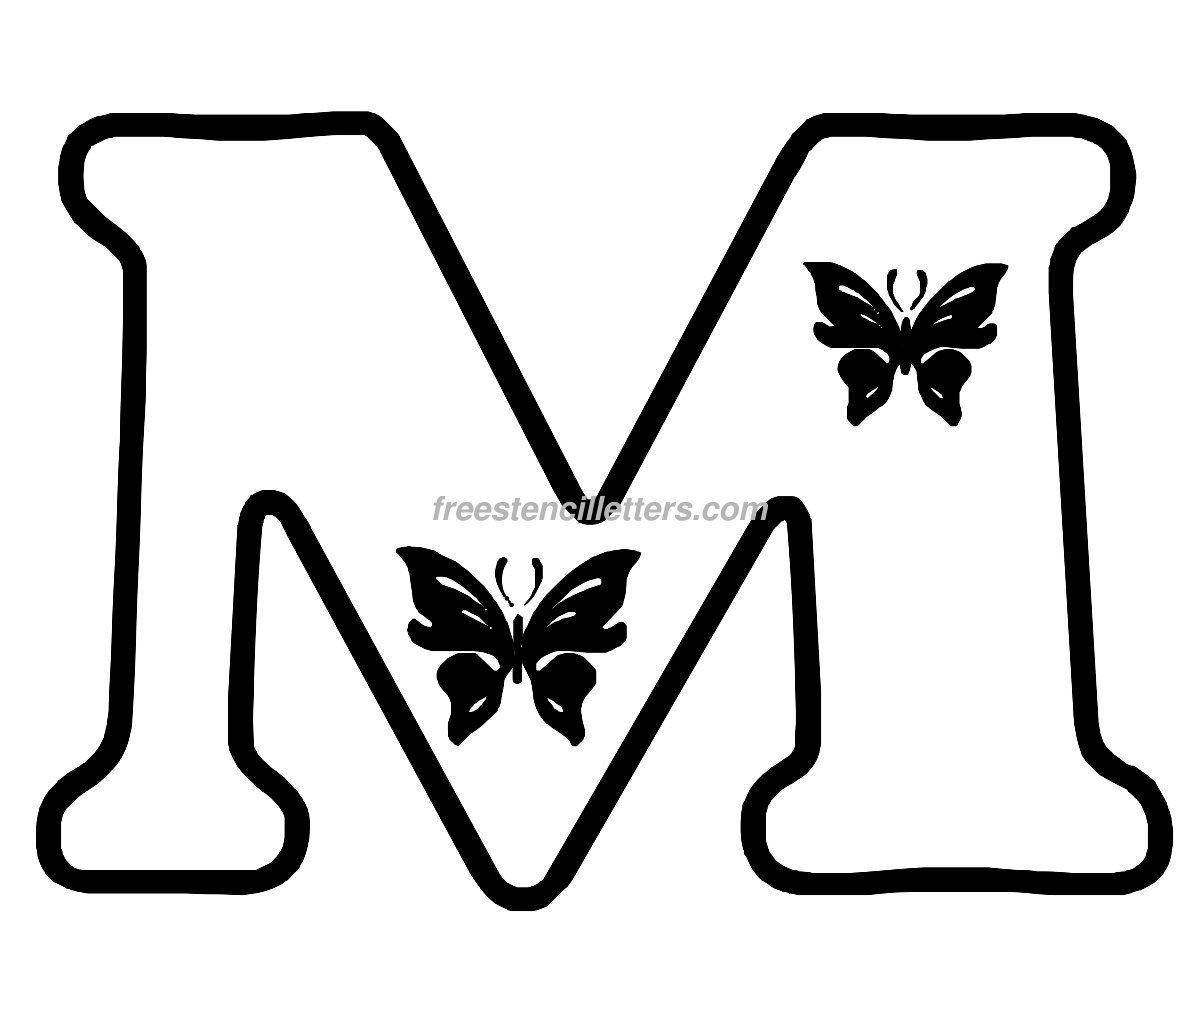 Butterfly stencil letters archives free stencil letters print m letter stencil spiritdancerdesigns Gallery